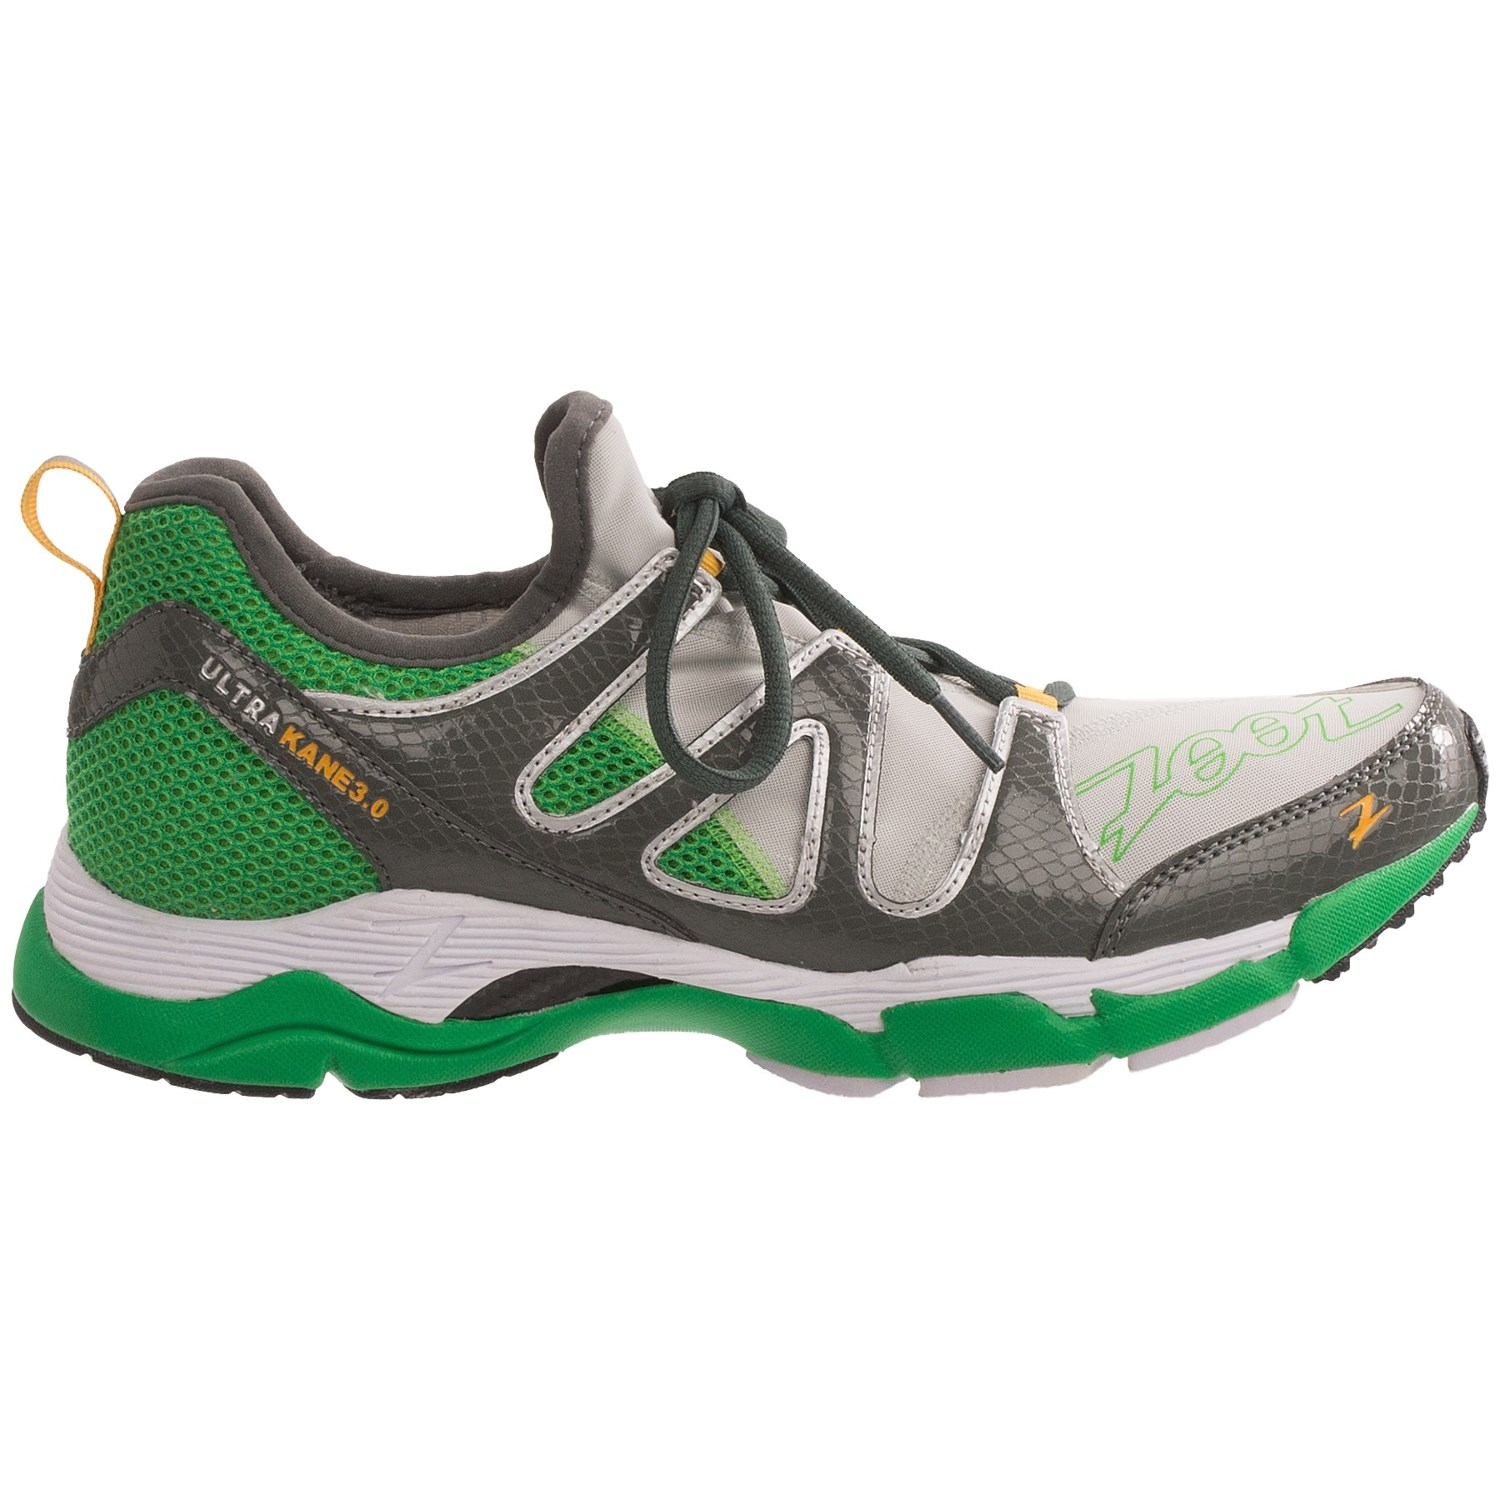 Zoot Running Shoes Review